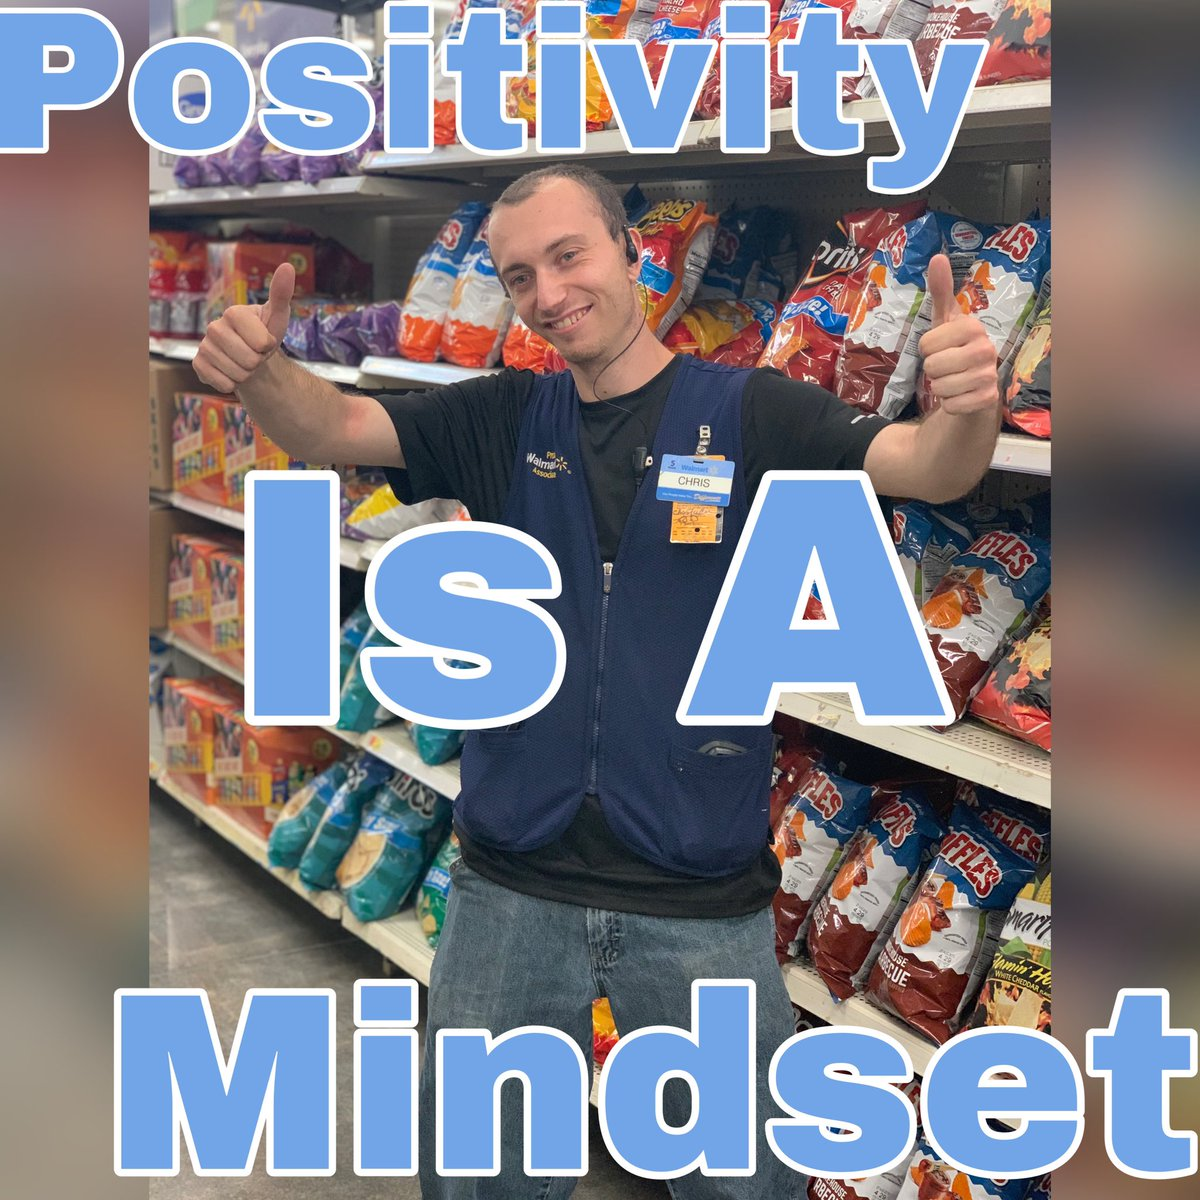 Did you know that you can empower people through positivity? Chris, one of our CAP 2 Leads, tells us that even if we aren't exactly where we need to be we are making positive impacts and that matters to morale! Thank you for being a voice of positivity for our associates!